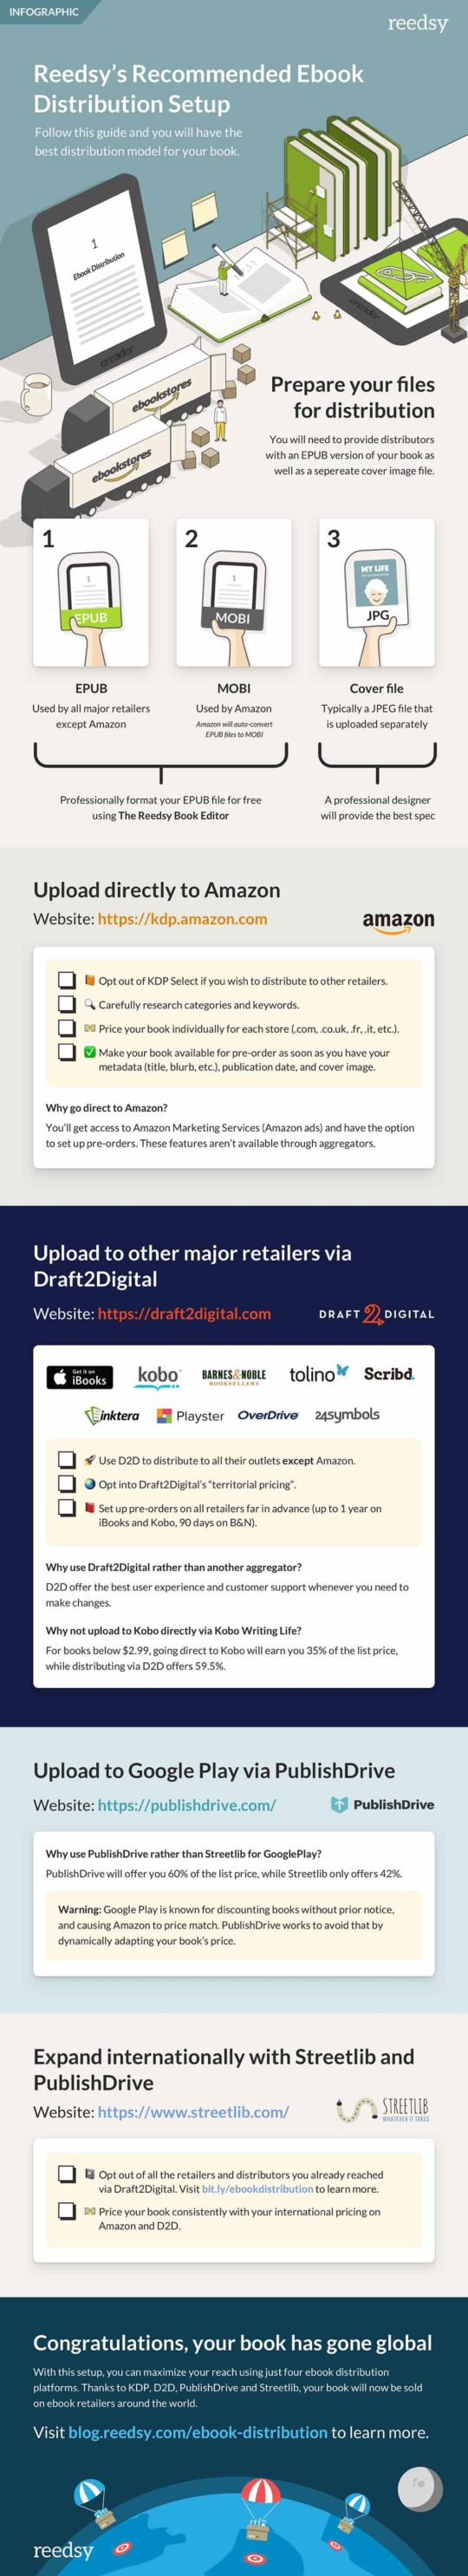 How to conveniently pubish your ebook to major ebook retailers #infographic